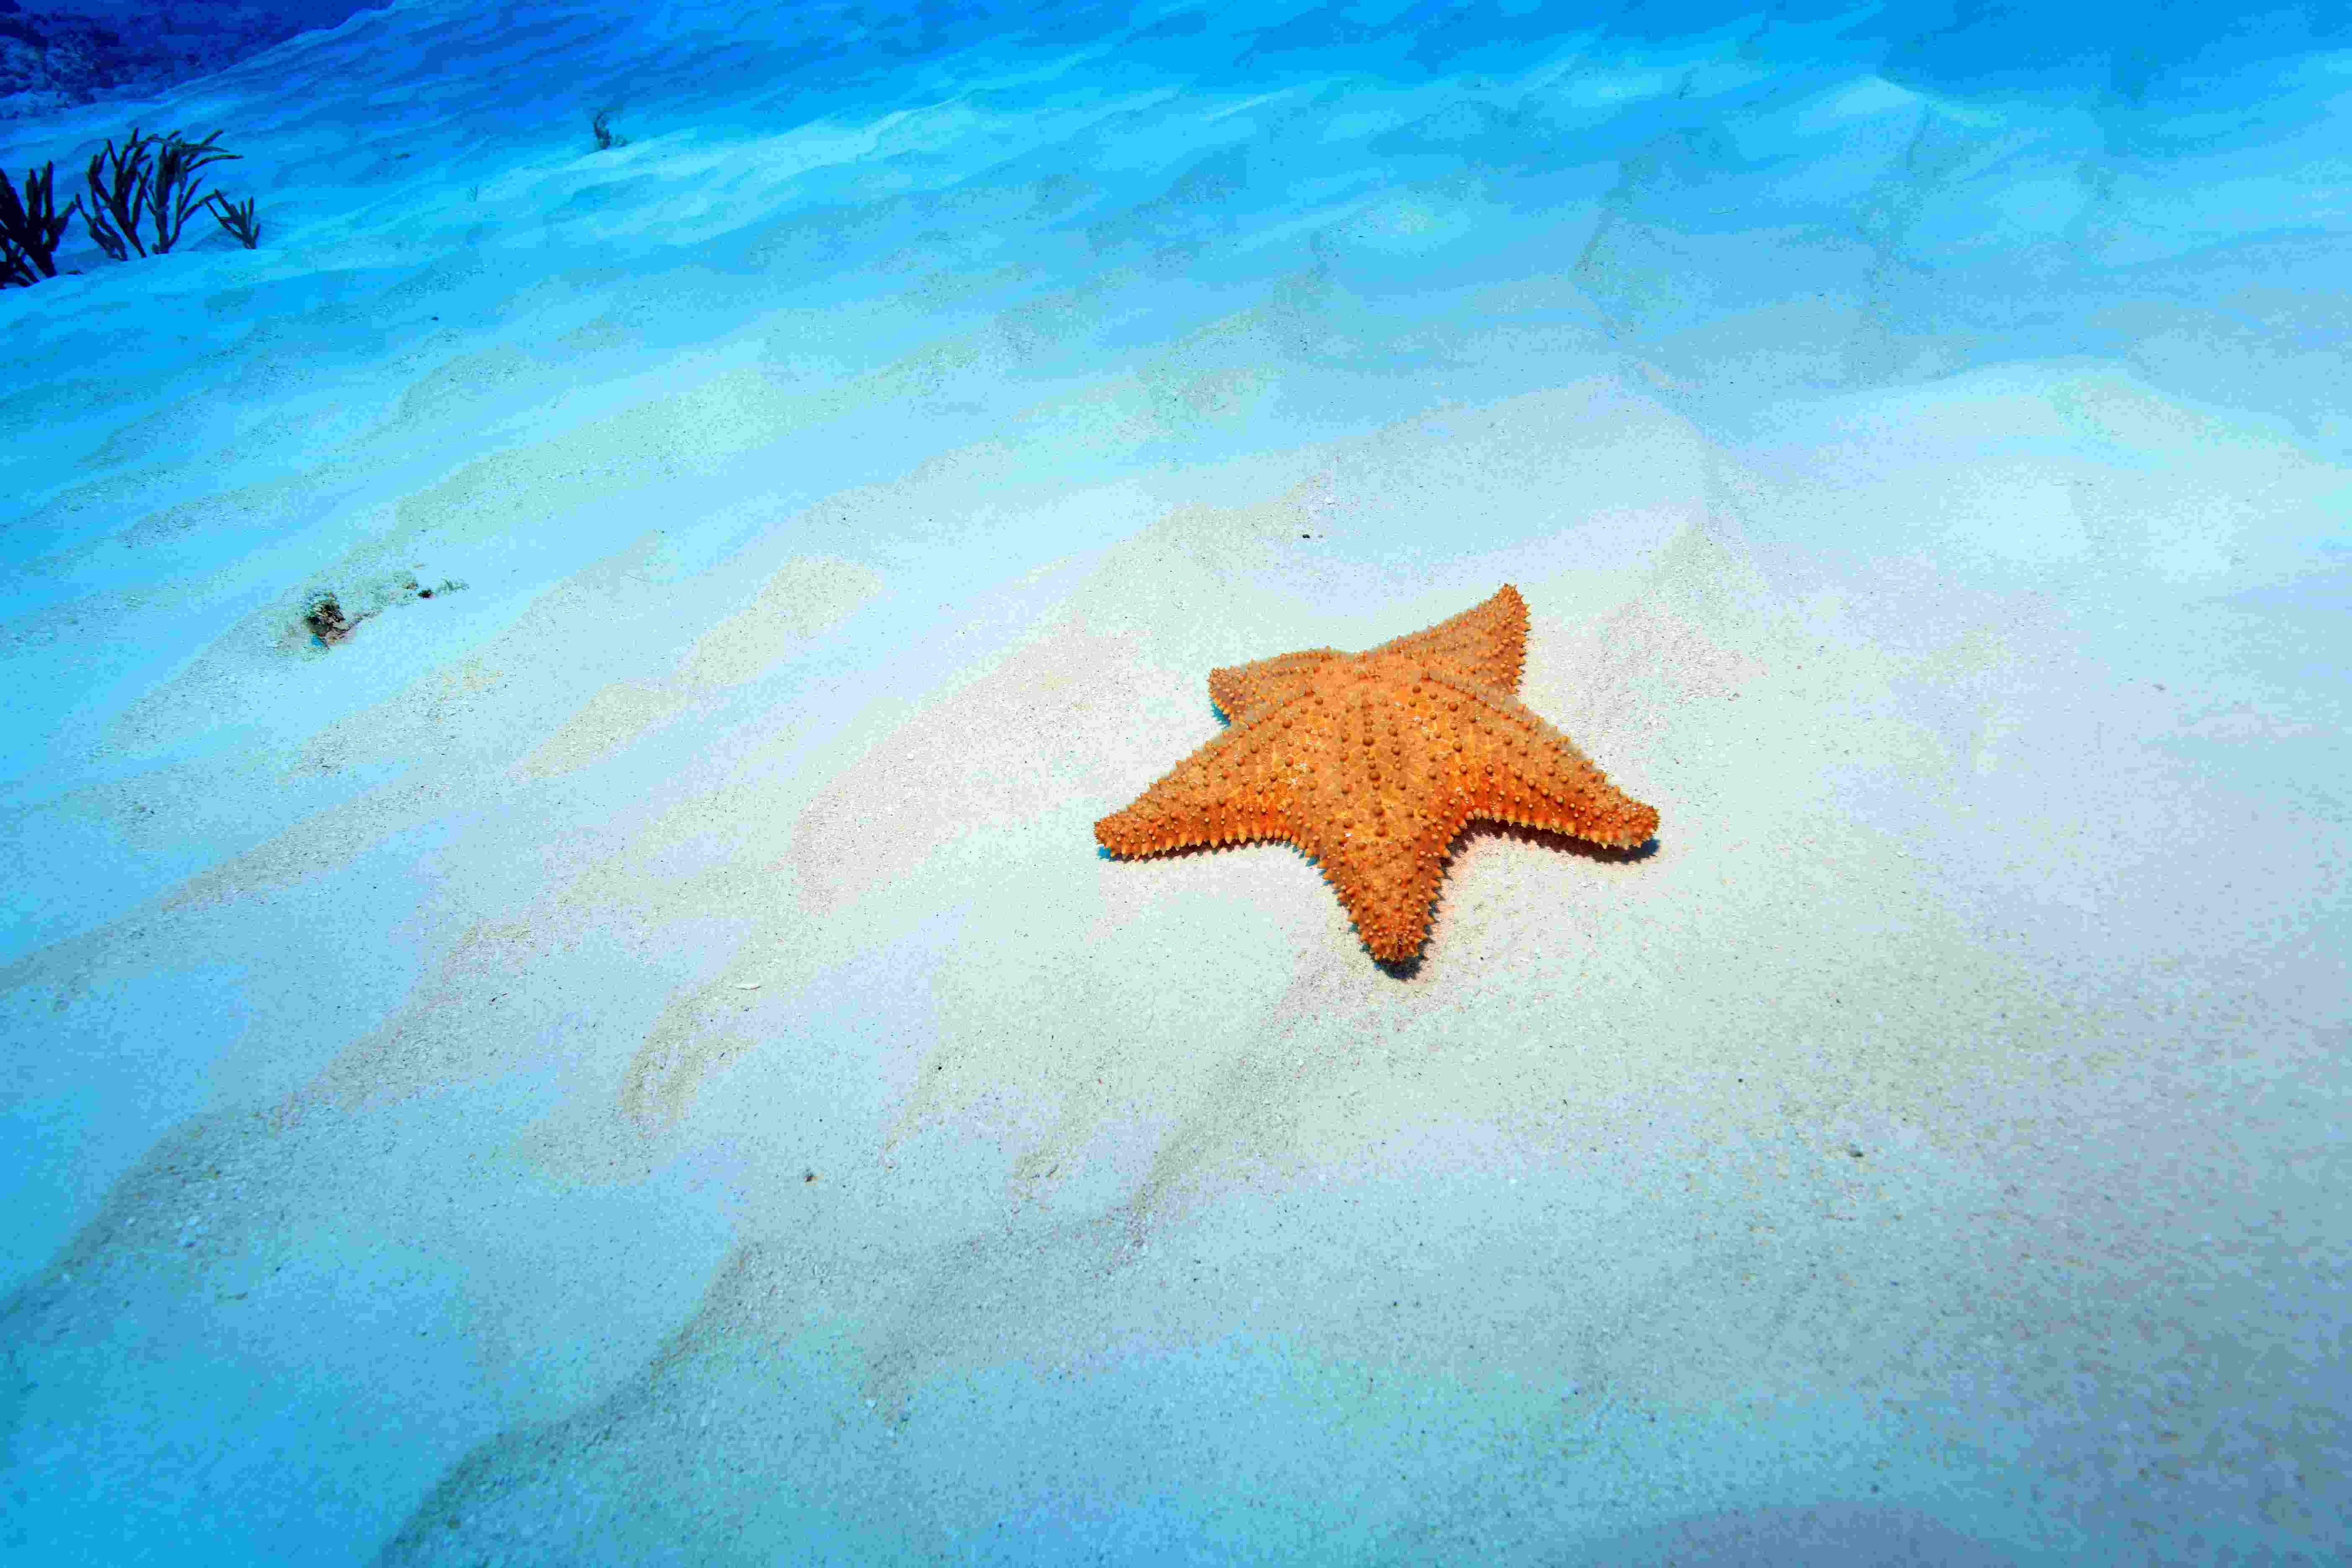 Echinoderms - Biology Questions and Answers